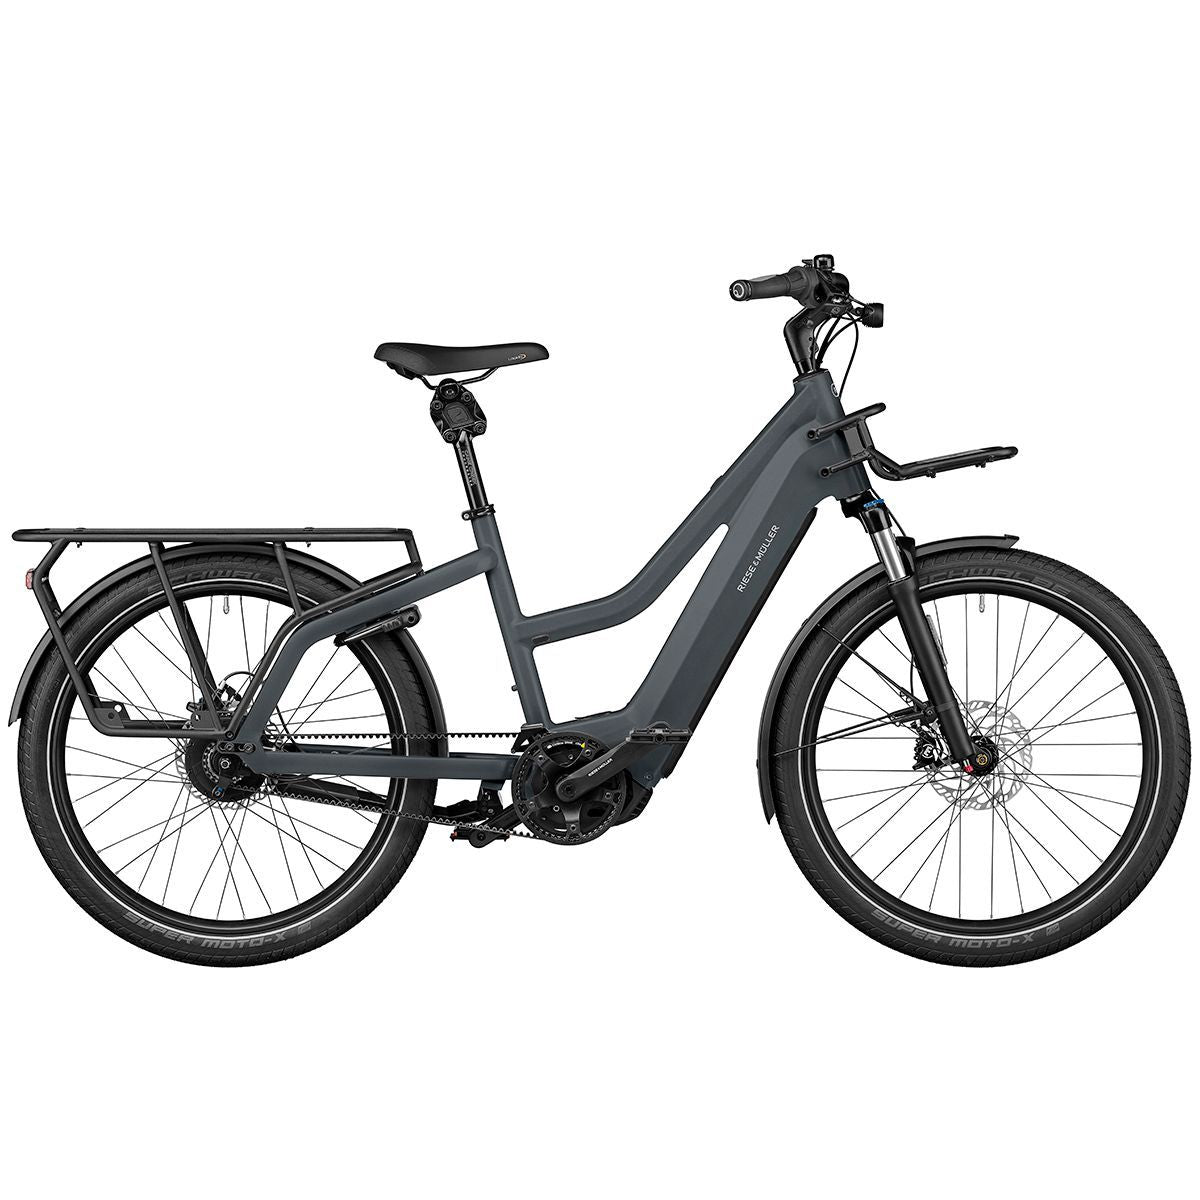 Riese & Muller Multicharger Mixte GT Vario HS-Oregon E-Bikes